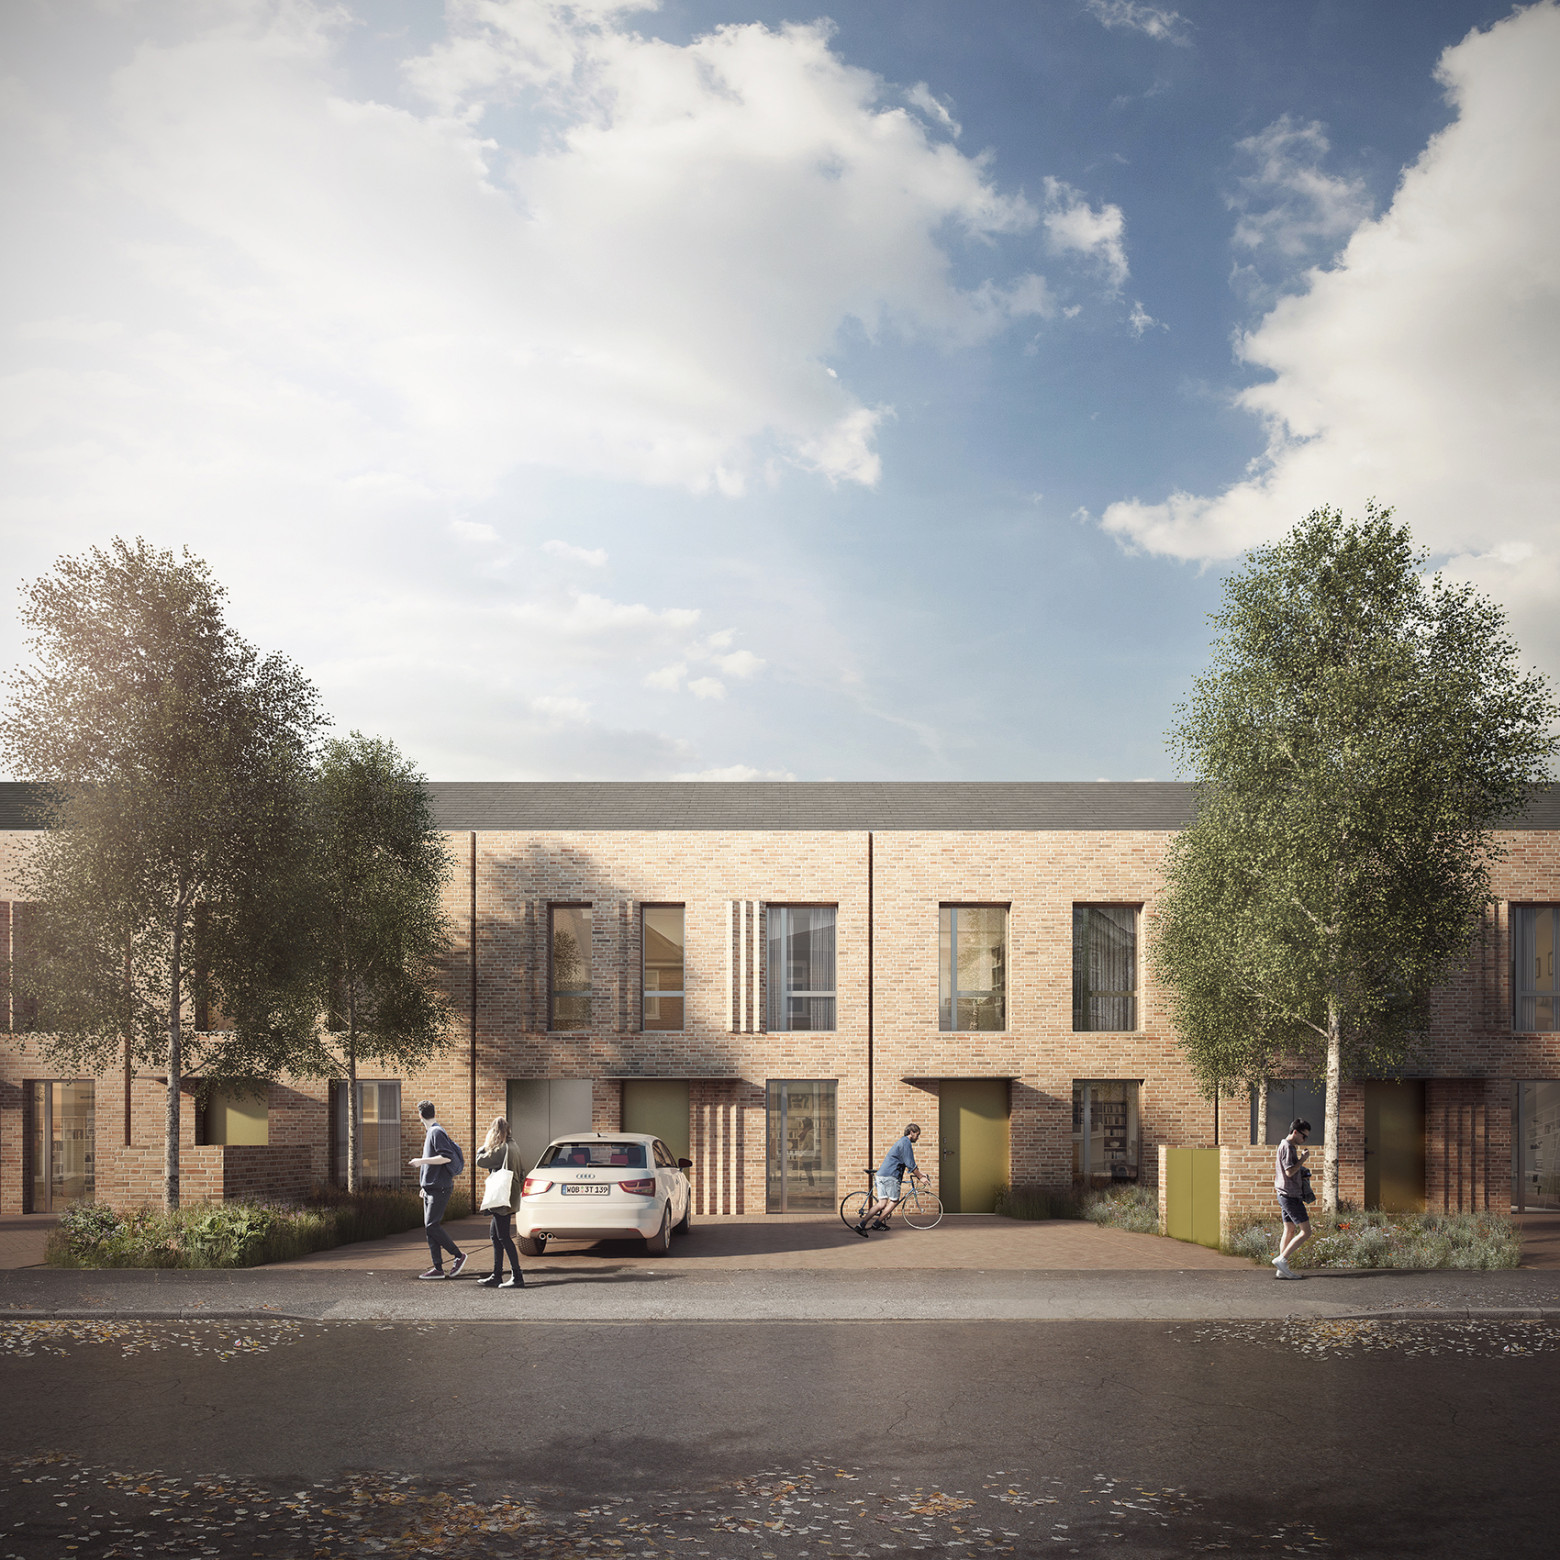 Detailed planning consent for Lombard Court